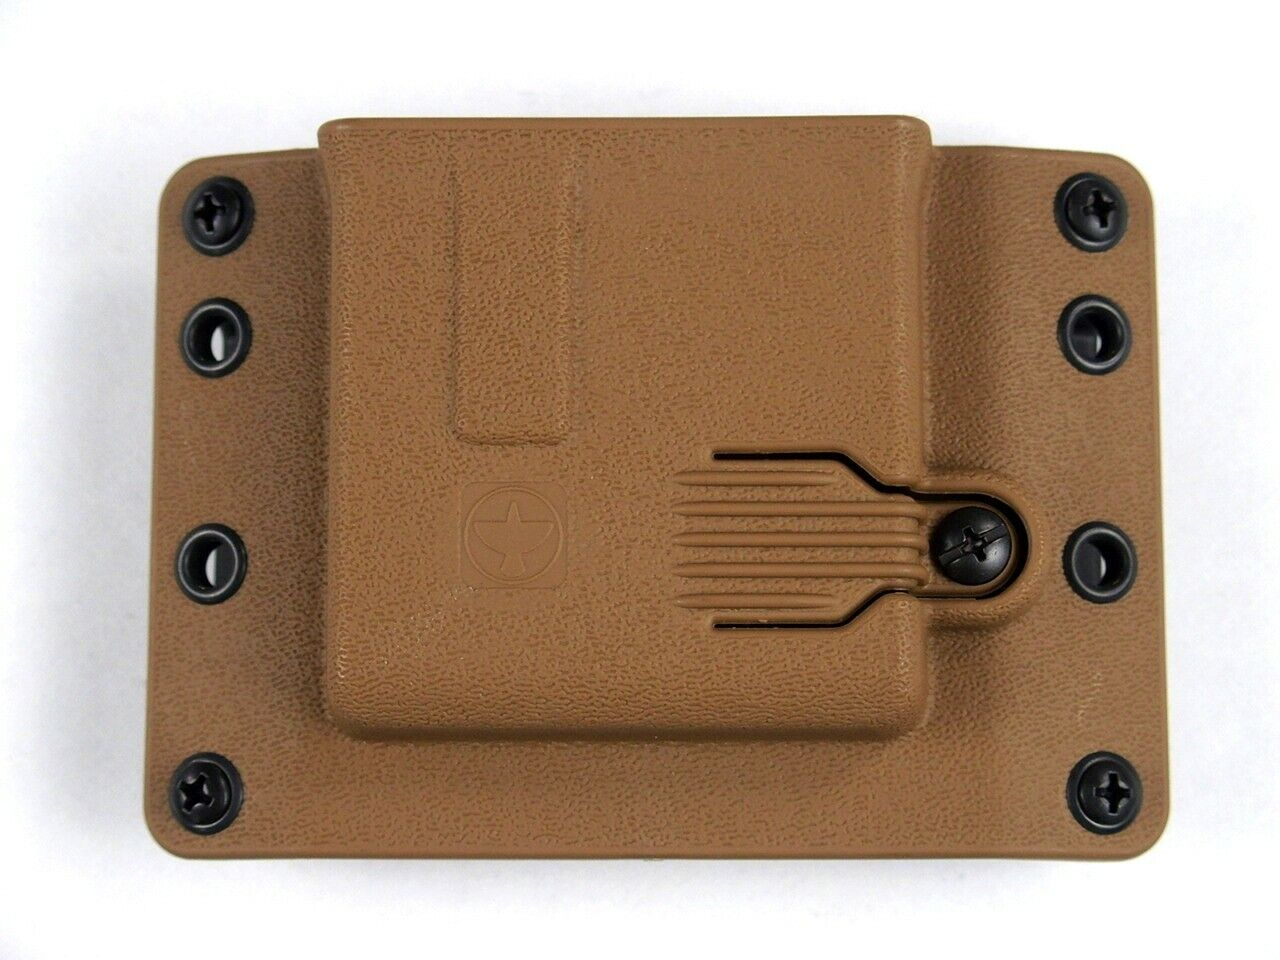 Raven Concealment Copia 223 556 Rifle Magazine Holster Carrier Coyote Brown